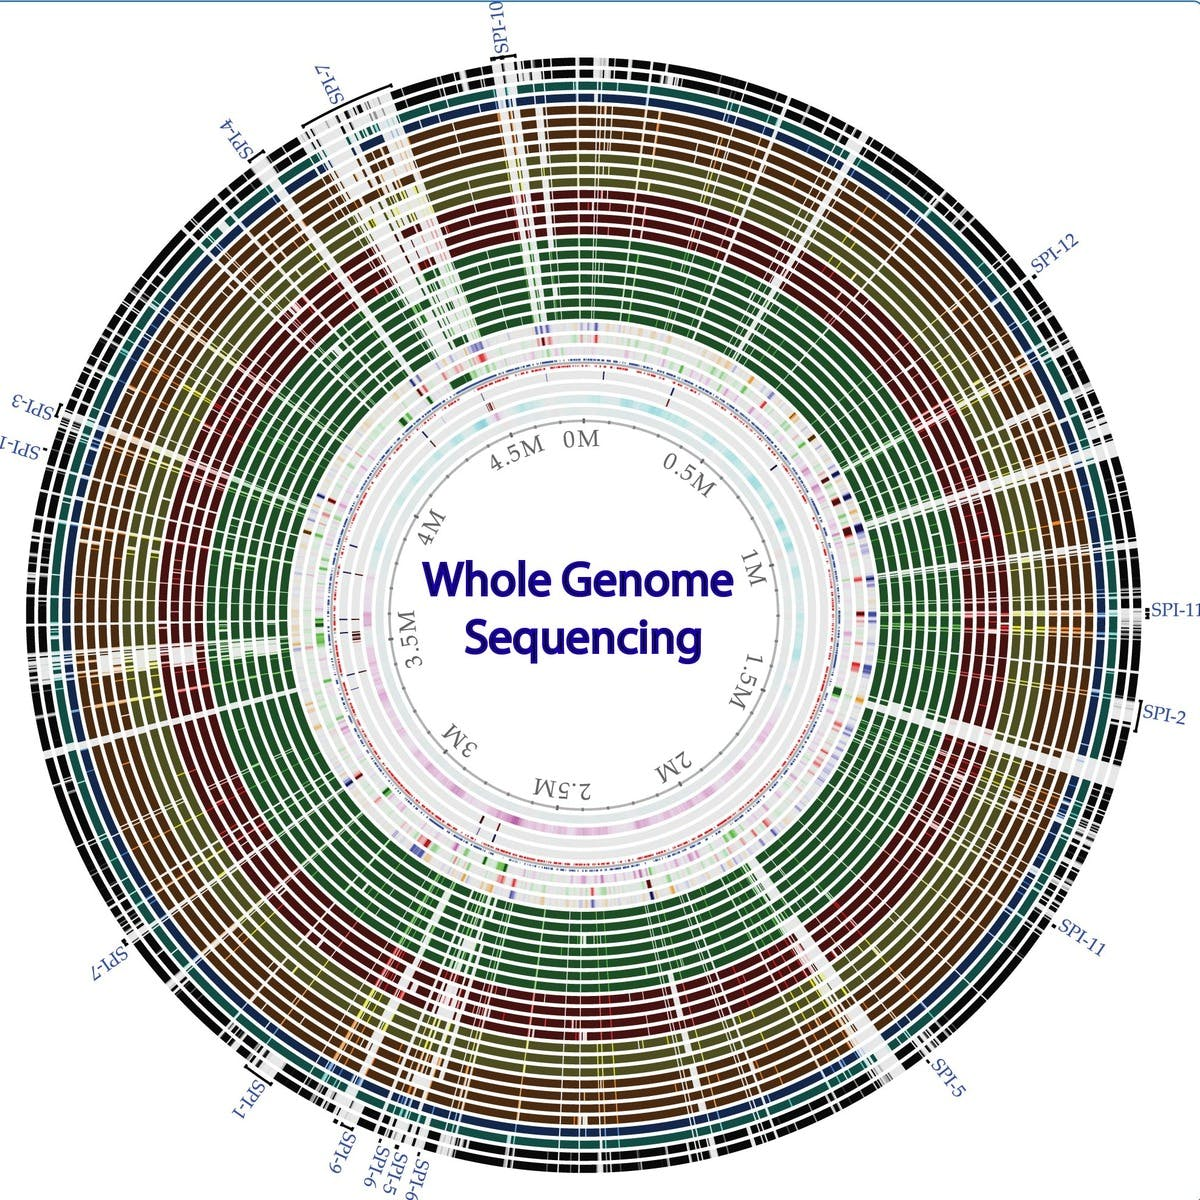 Whole genome sequencing of bacterial genomes - tools and applications